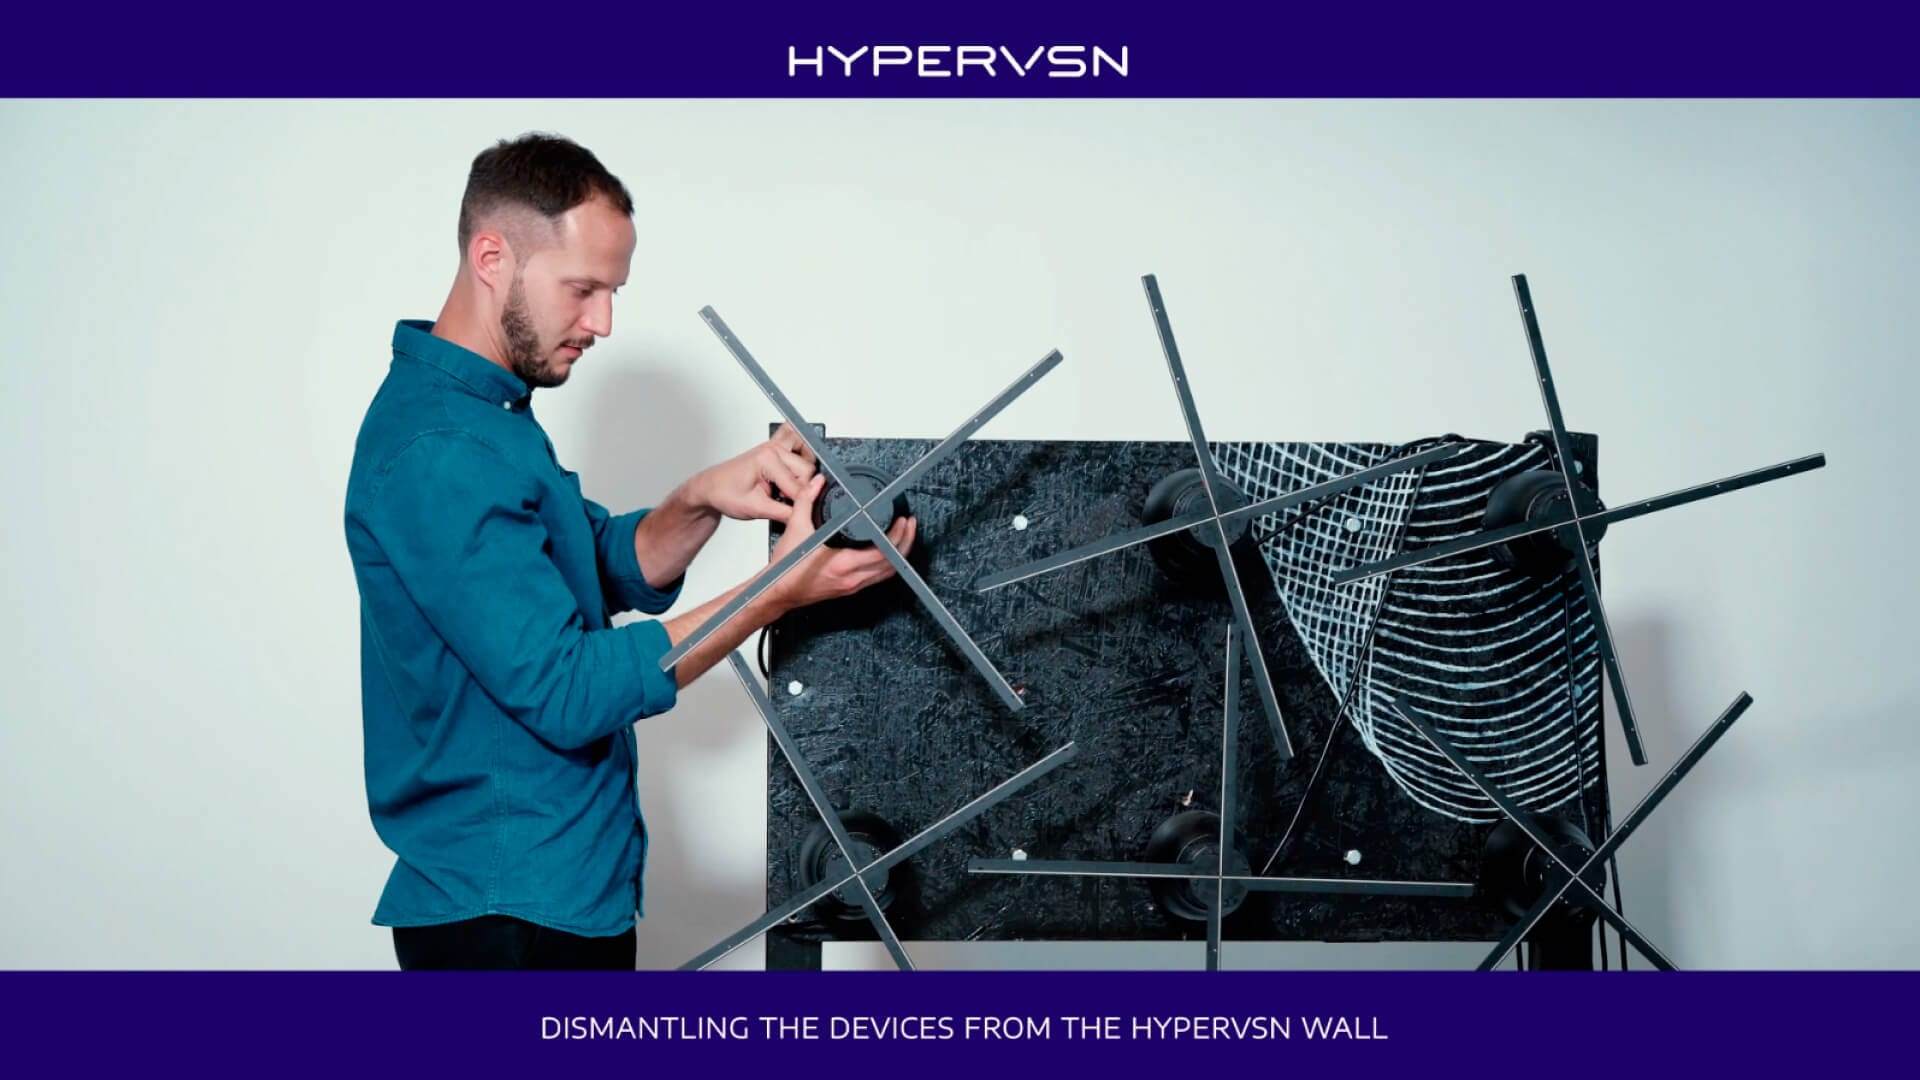 Dismantling devices from the HYPERVSN wall